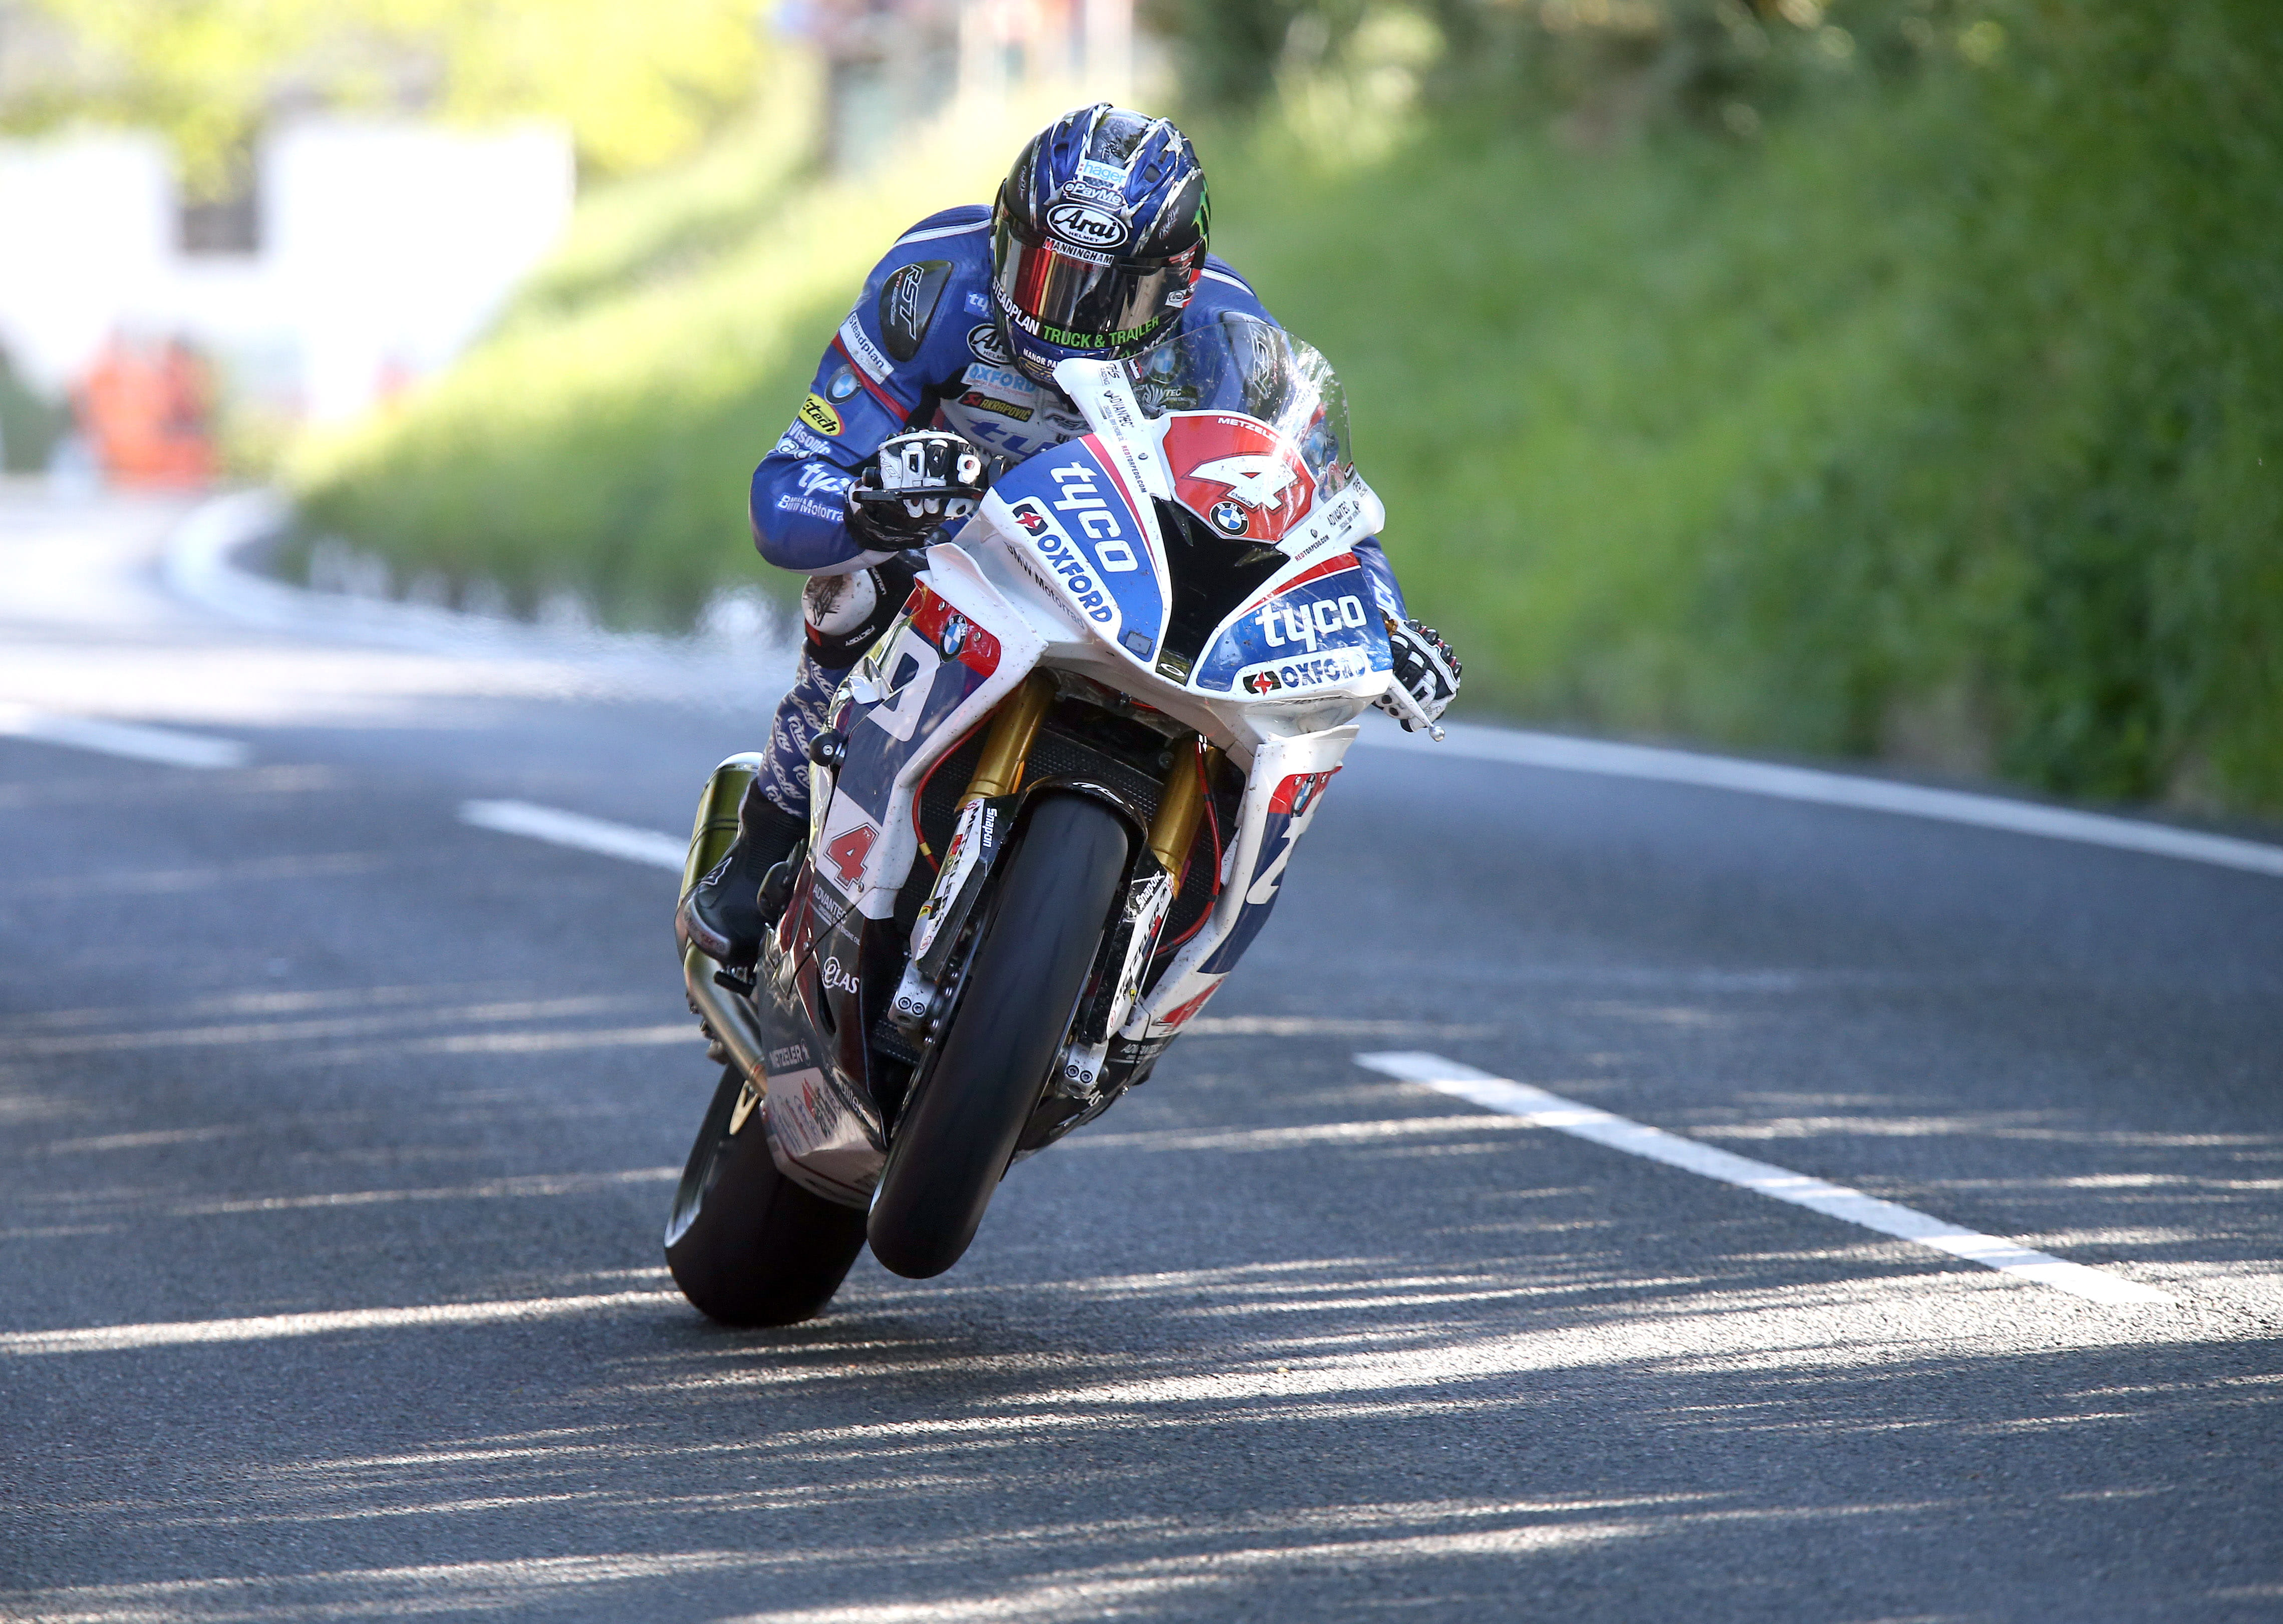 Ian Hutchinson, 14-times TT race winner, here on the Tyco BMW in 2016